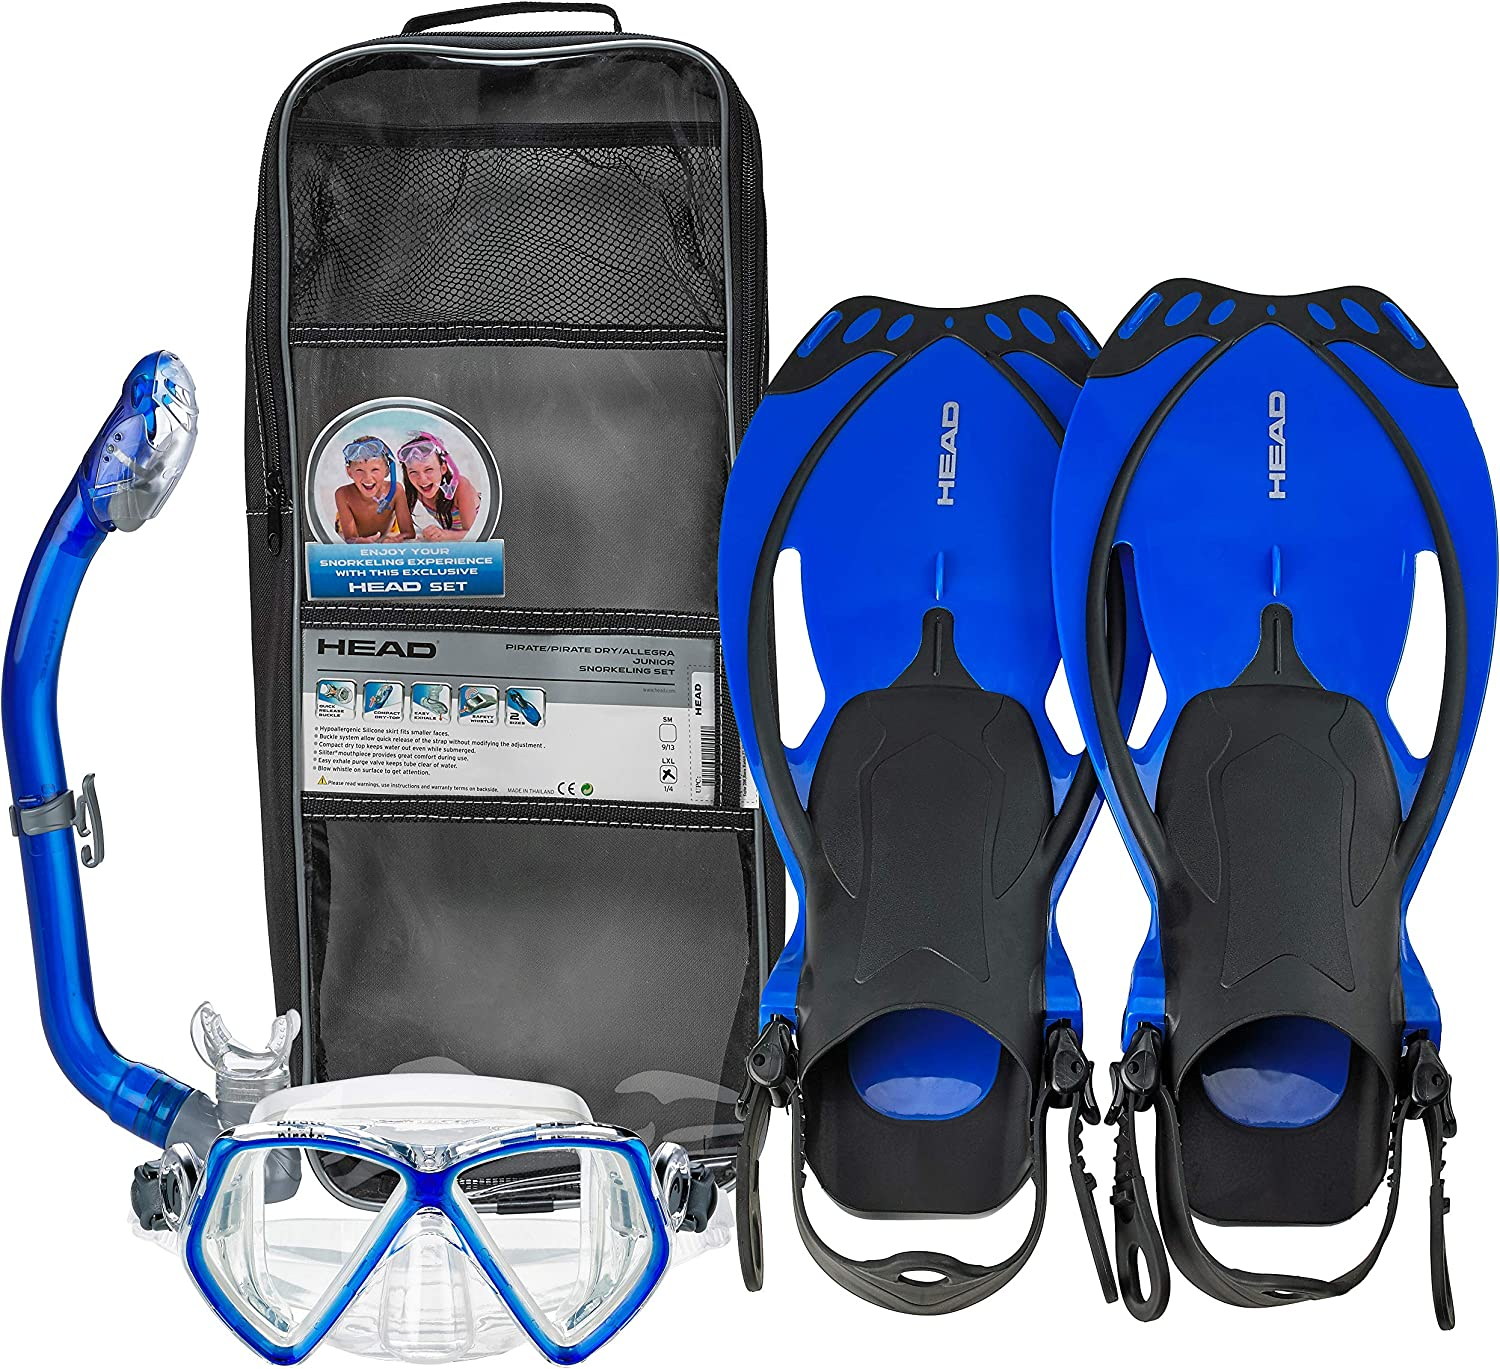 HEAD Pirate Junior Premium Youth Mask Fin Snorkel Set with Travel Bag